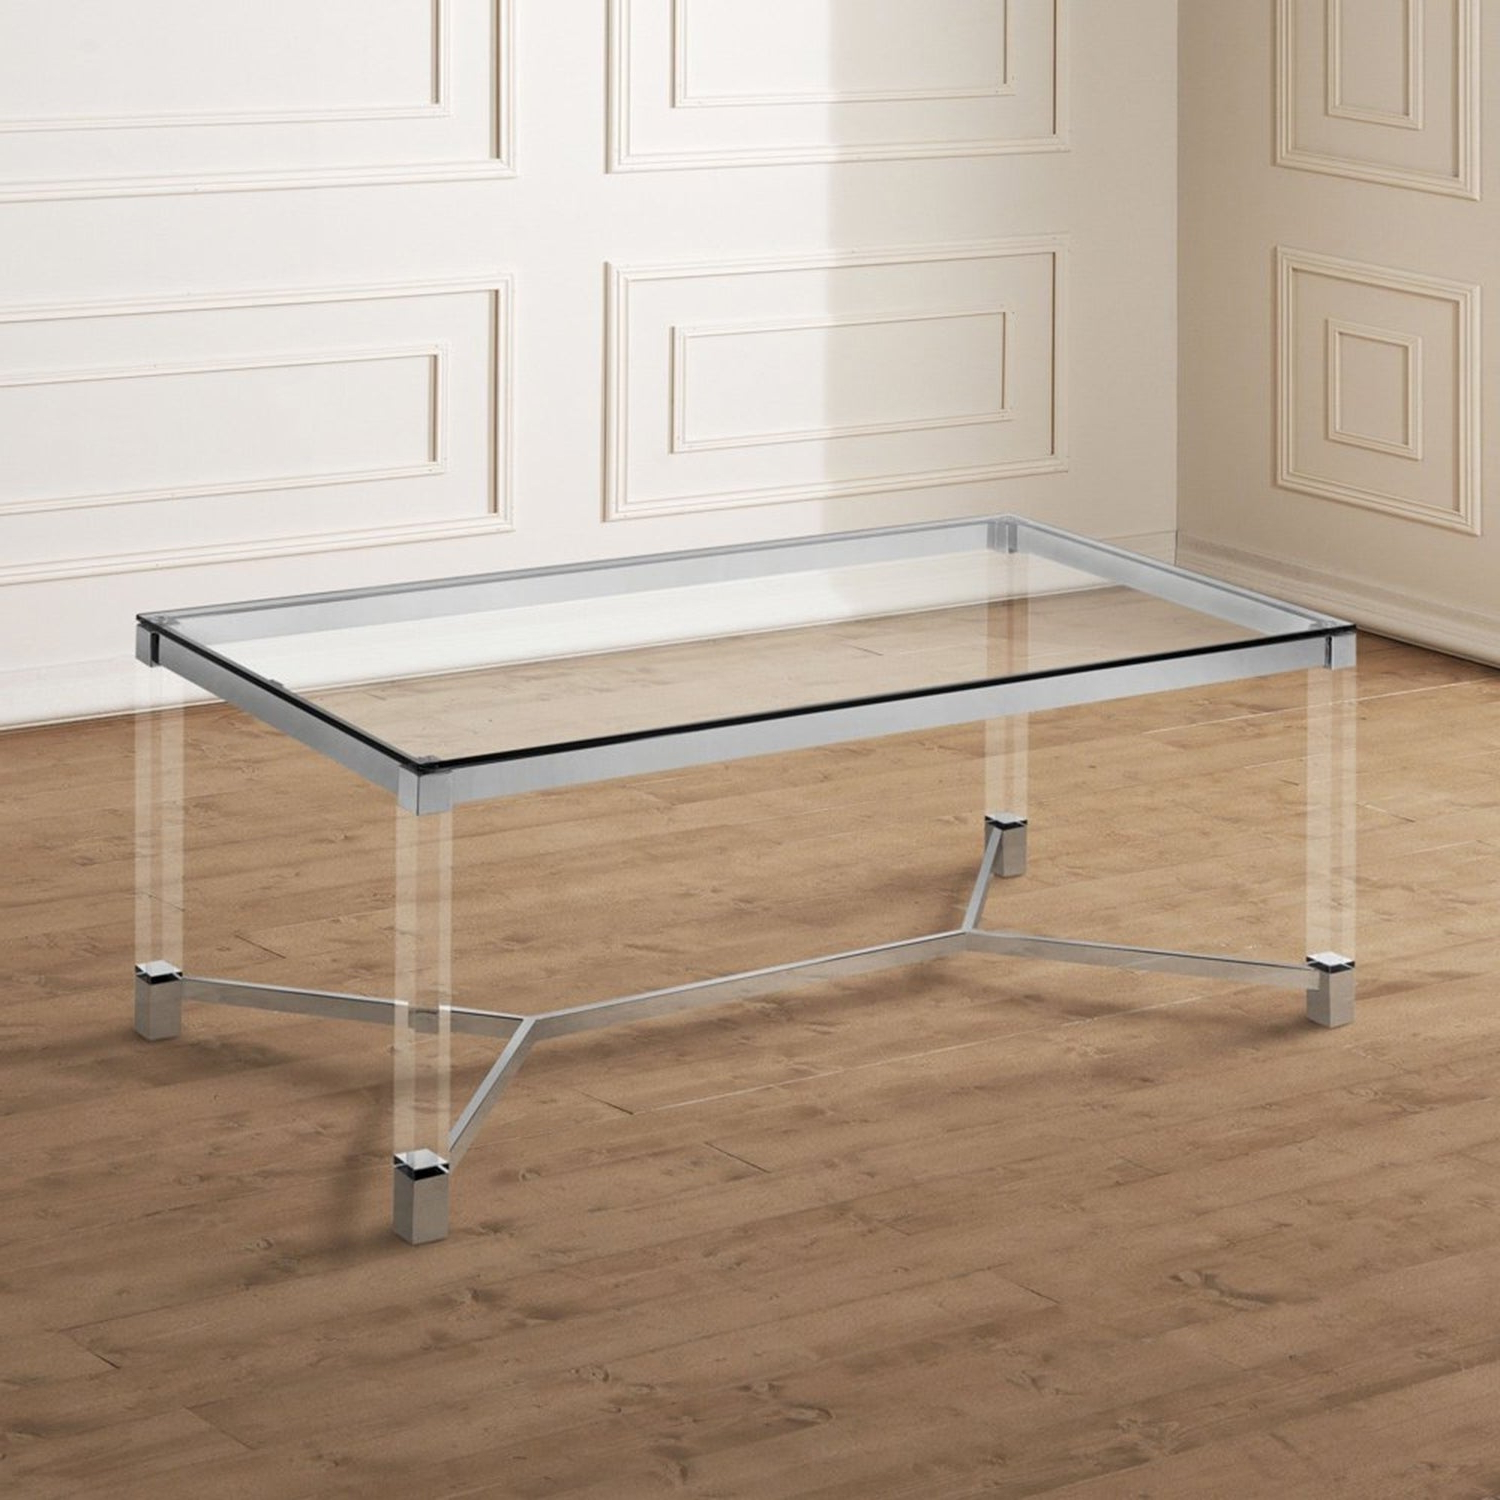 Rayna Contemporary Chrome Tempered Glass Coffee Tablefoa For Preferred Thalberg Contemporary Chrome Coffee Tables By Foa (View 13 of 20)